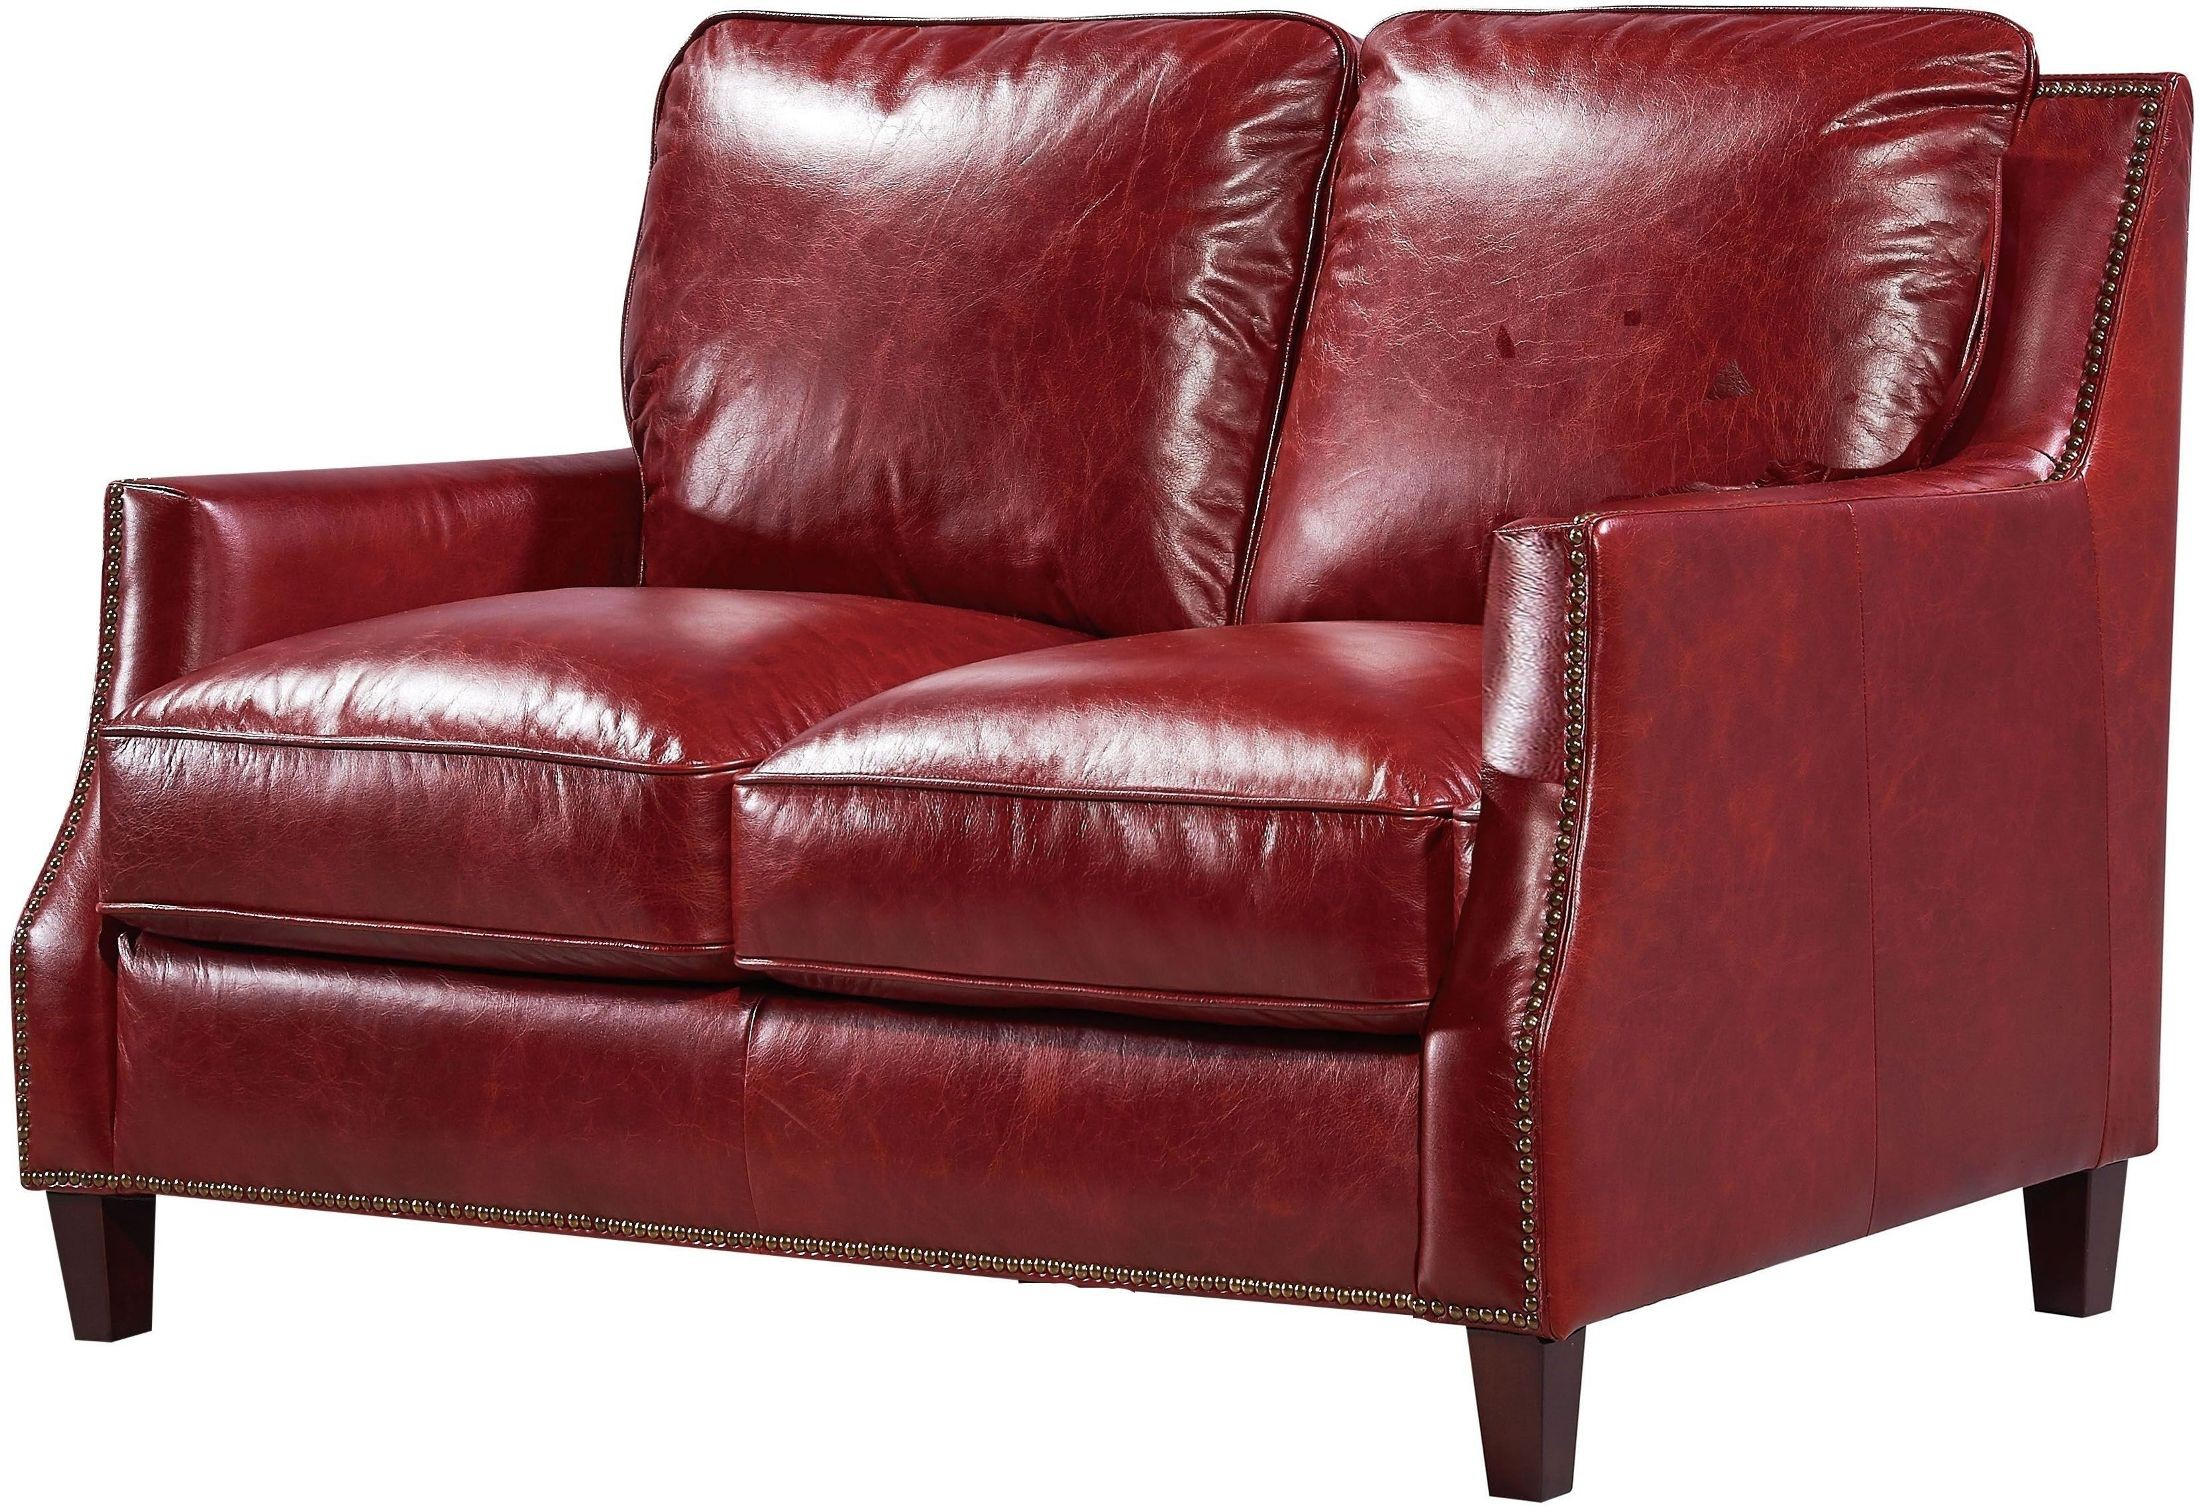 Georgetowne Oakridge Red Leather Loveseat From Luxe Leather Coleman Furniture